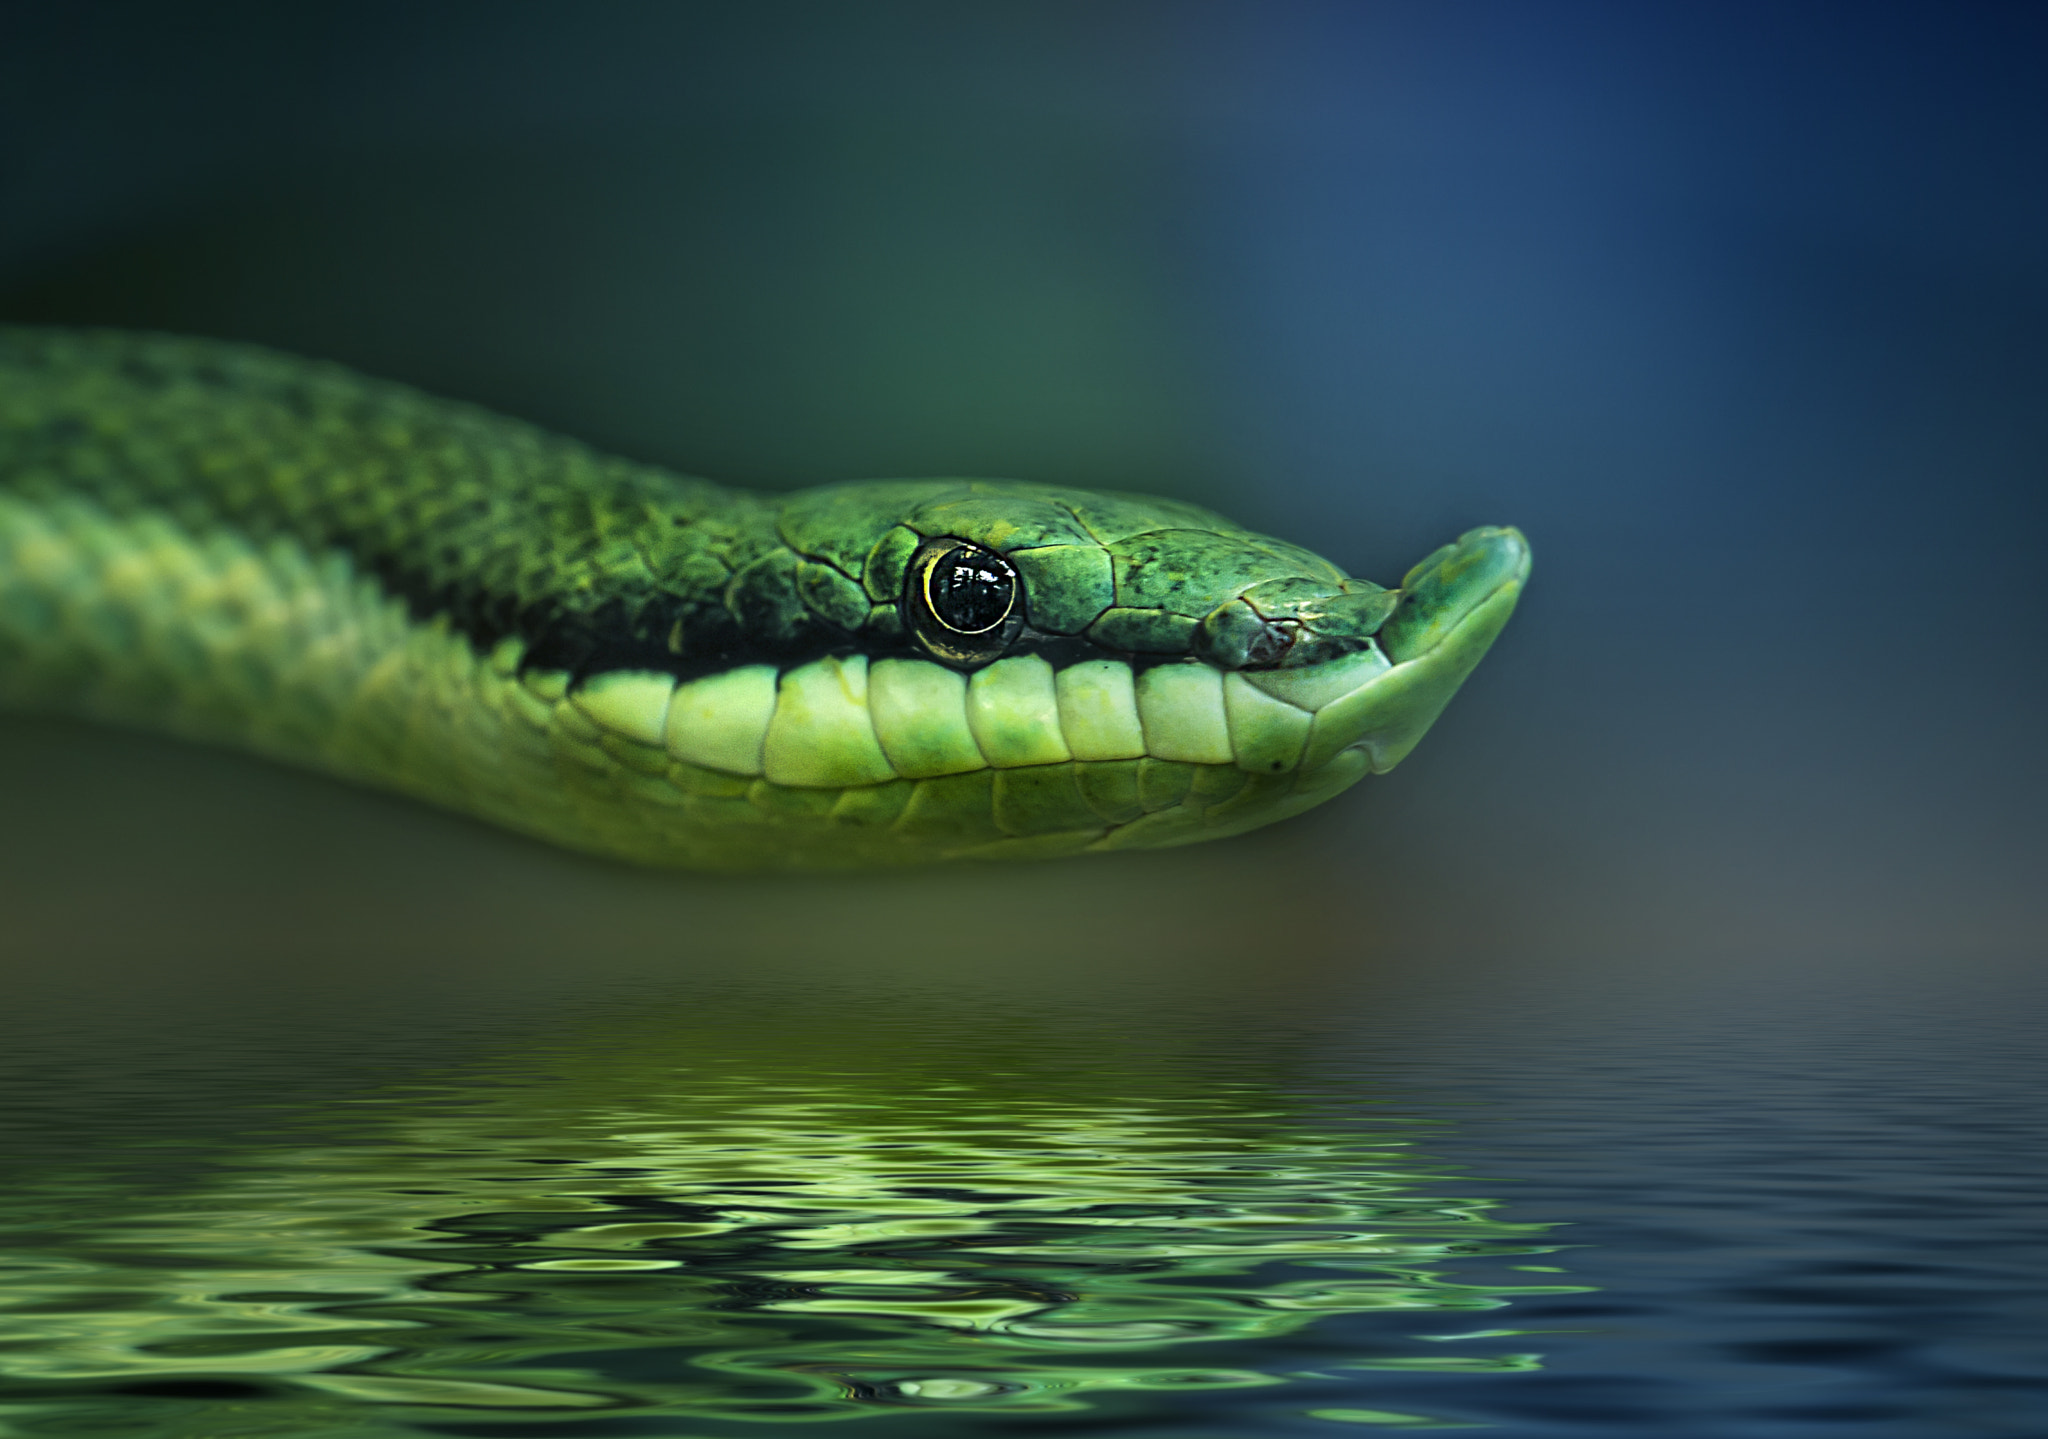 Photograph snake II by Detlef Knapp on 500px